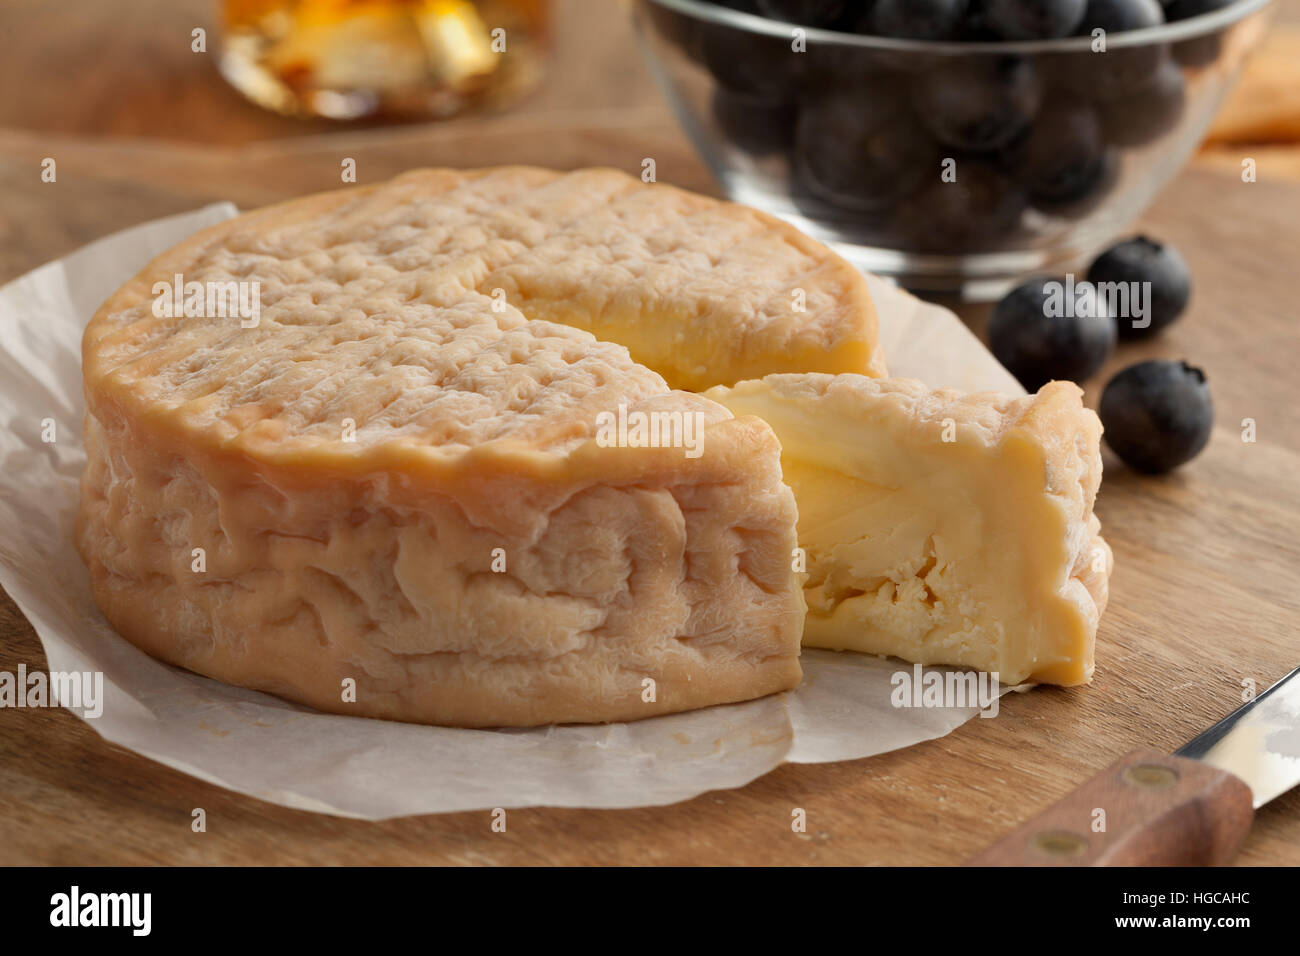 Creamy ripe Epoisses cheese close up - Stock Image